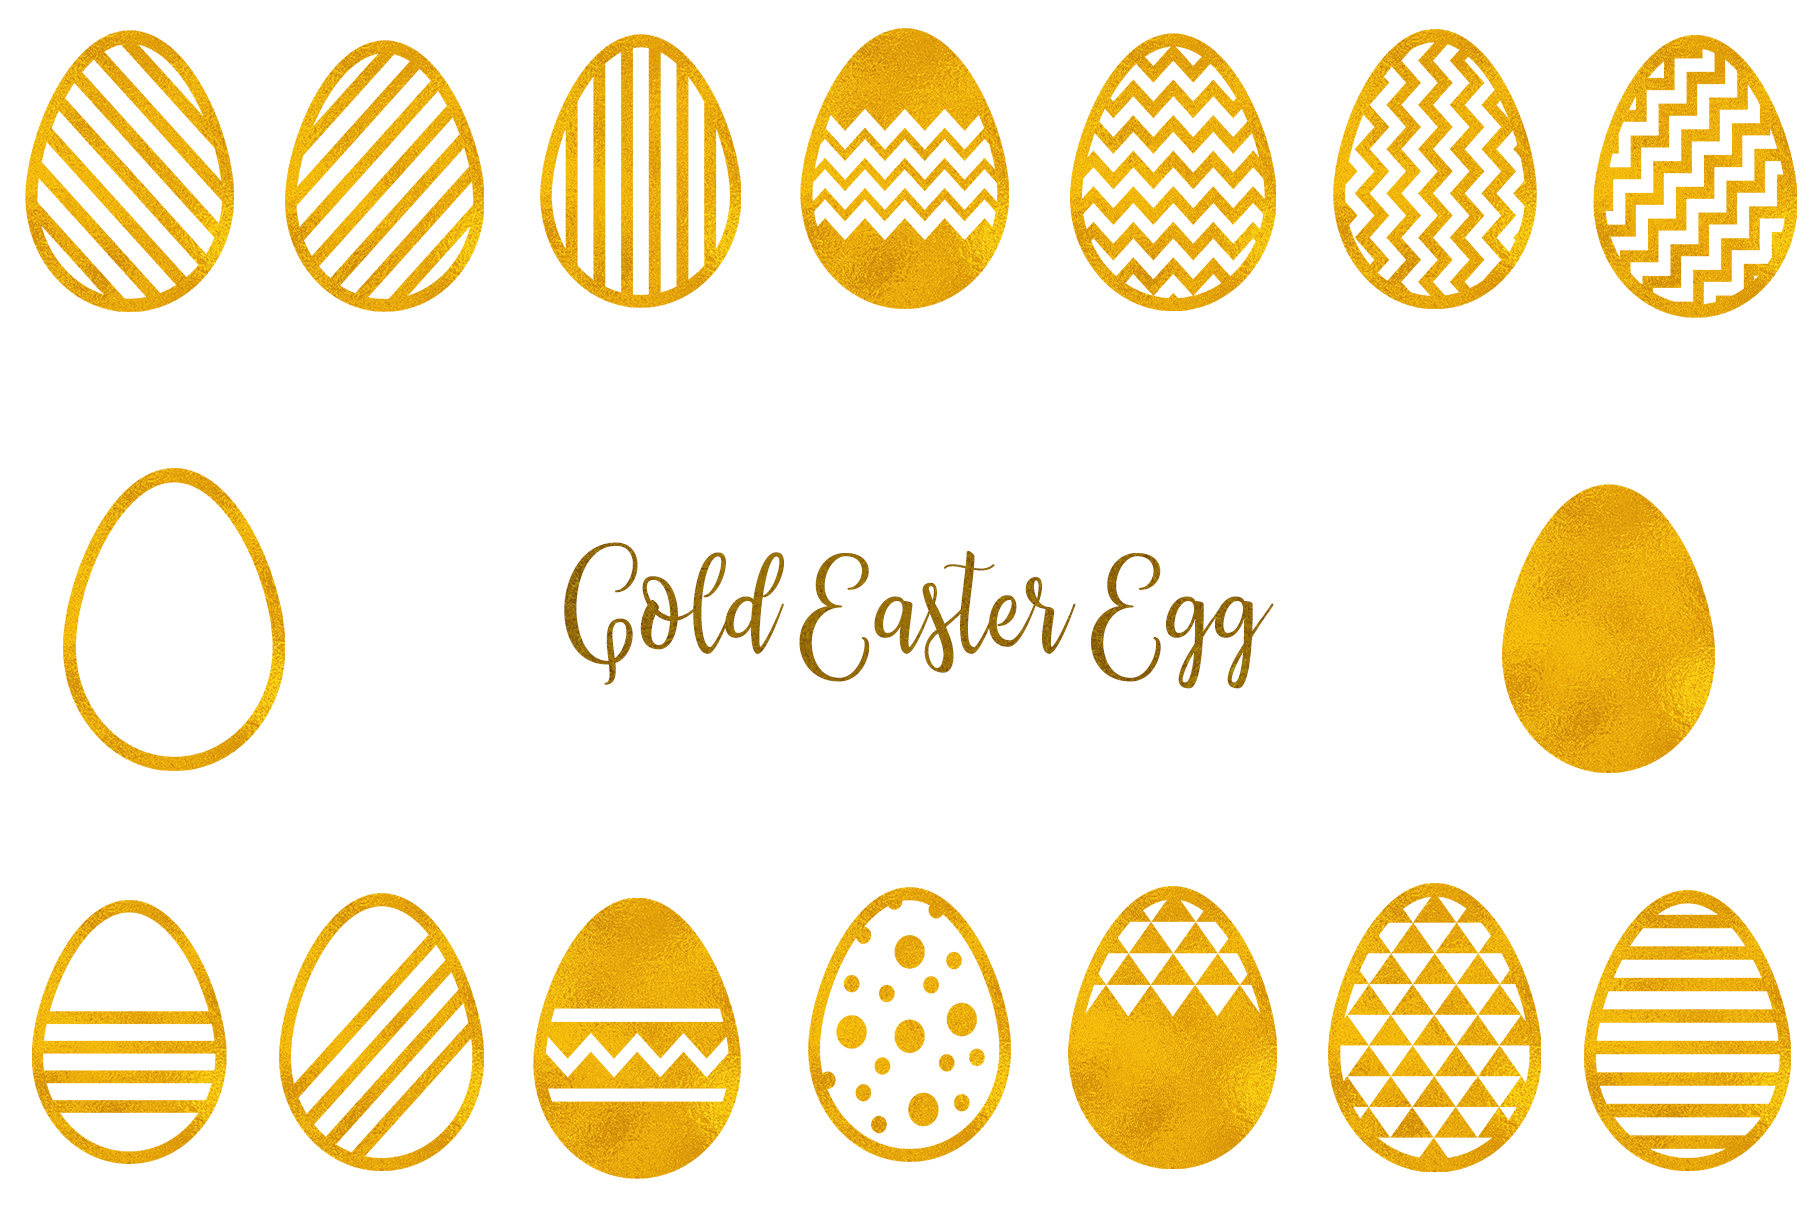 Download Free Gold Easter Egg Clipart Graphic By Bonadesigns Creative Fabrica for Cricut Explore, Silhouette and other cutting machines.